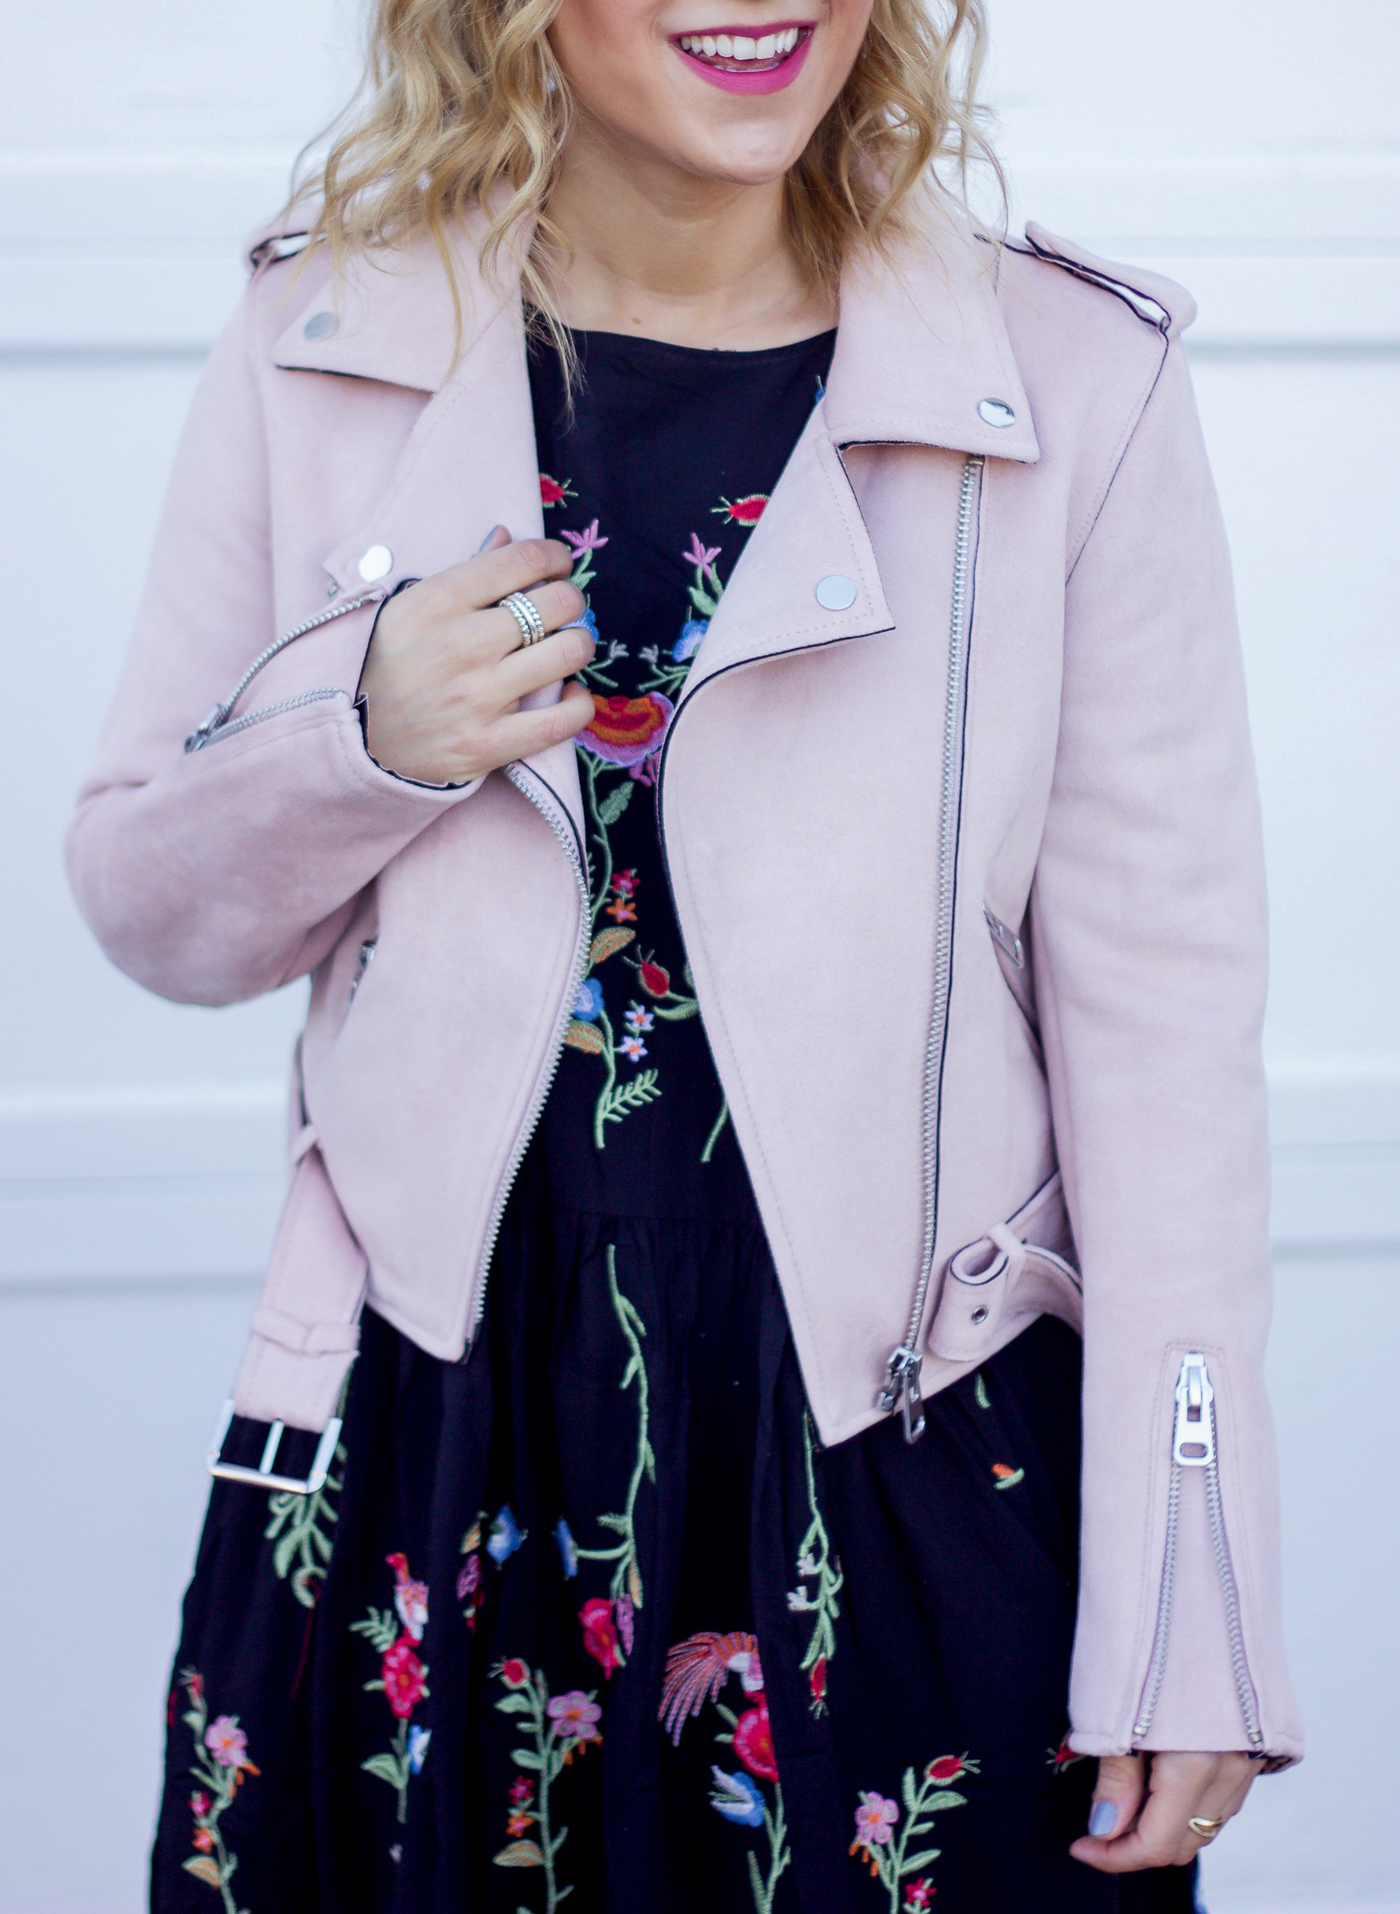 The pastel pink suede motorcycle jacket from Zara is a spring staple and perfect for so many outfit ideas